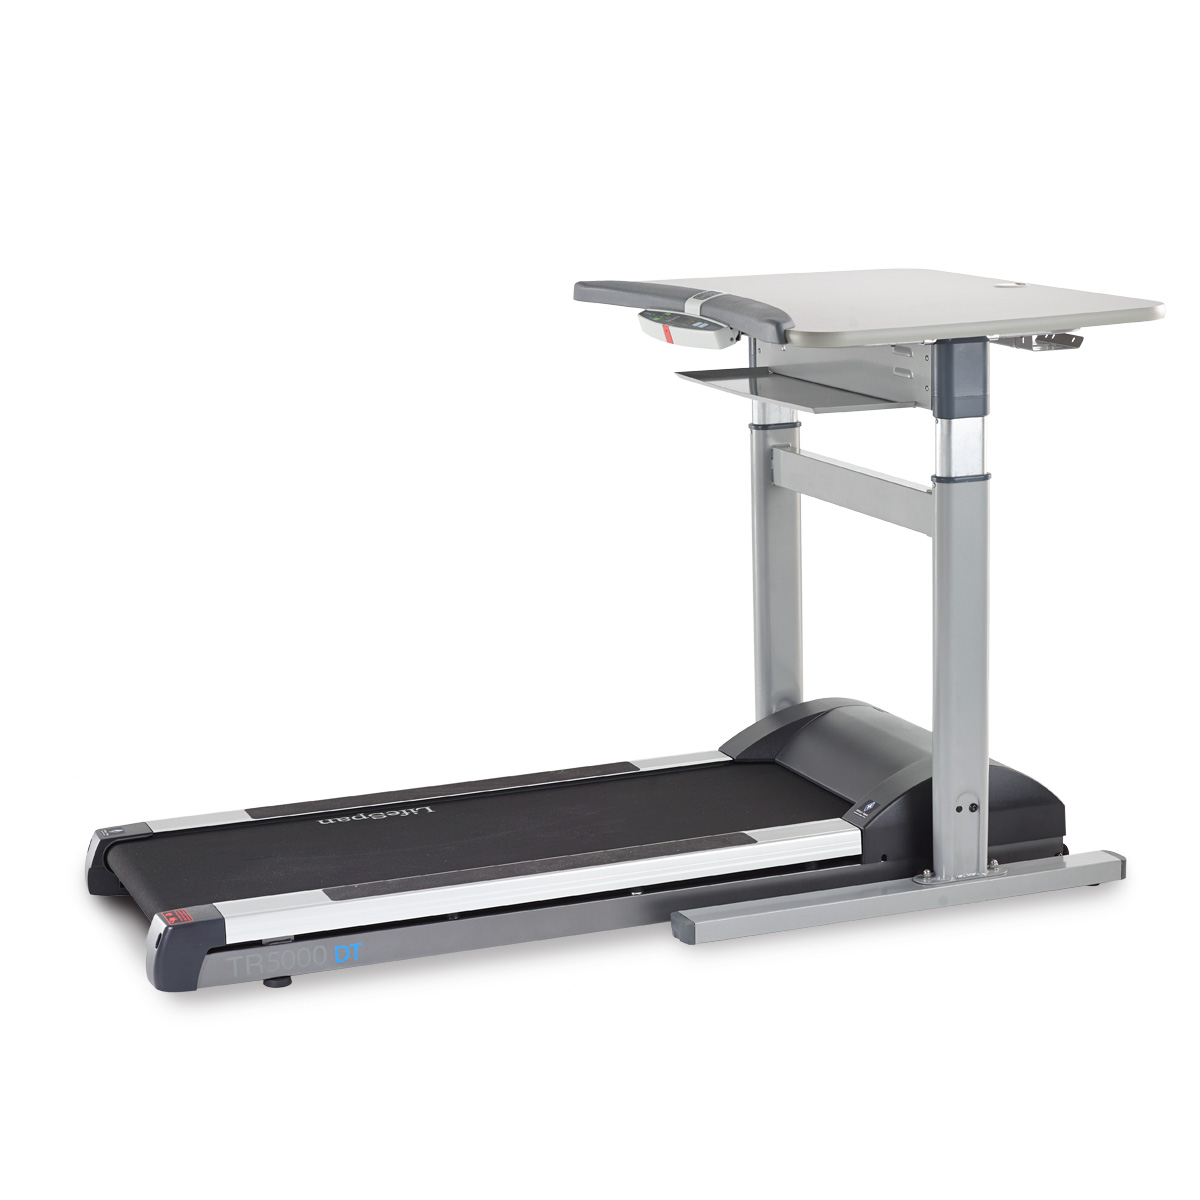 LifeSpan TR1200-DT5 Treadmill Desk - Reviews of Top 10 Most Popular Treadmills